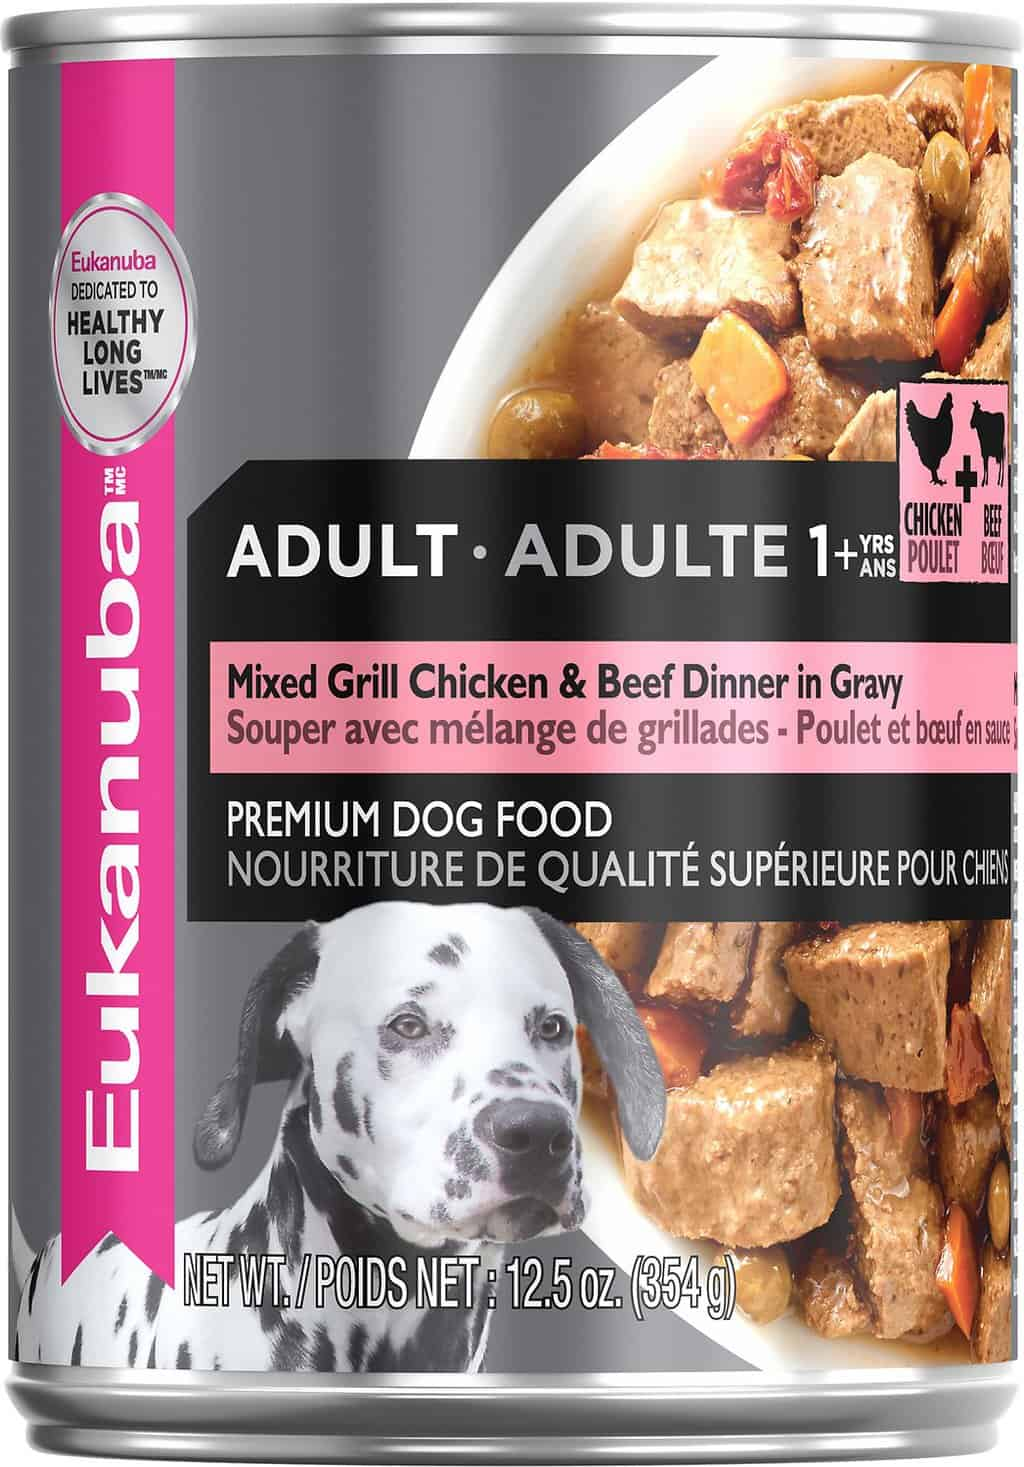 Eukanuba Dog Food: 2020 Review, Recalls & Coupons 13